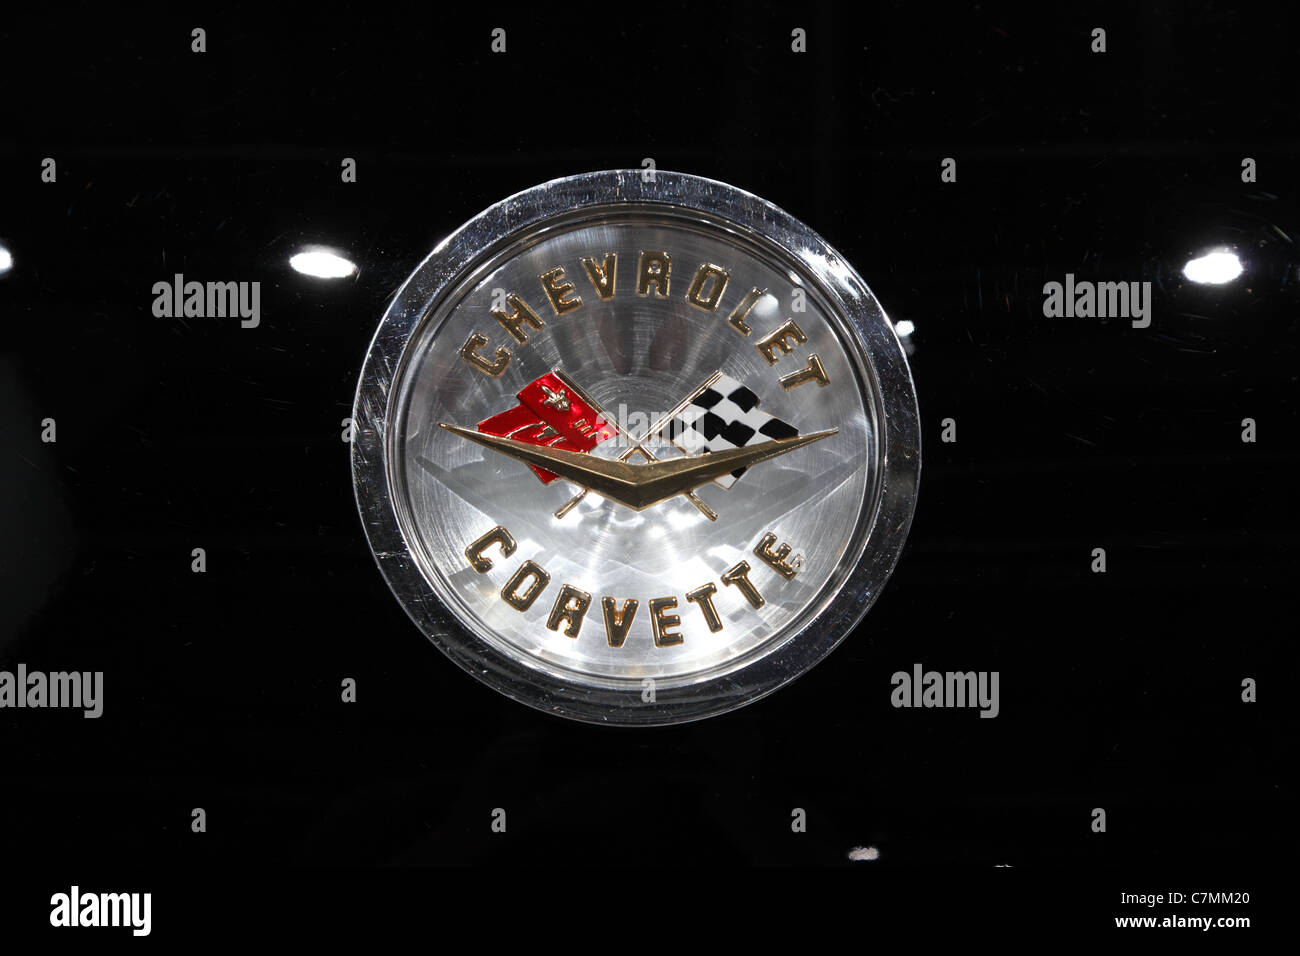 The old Chevrolet Corvette Logo at the 64th IAA (Internationale Automobil Ausstellung) - Stock Image